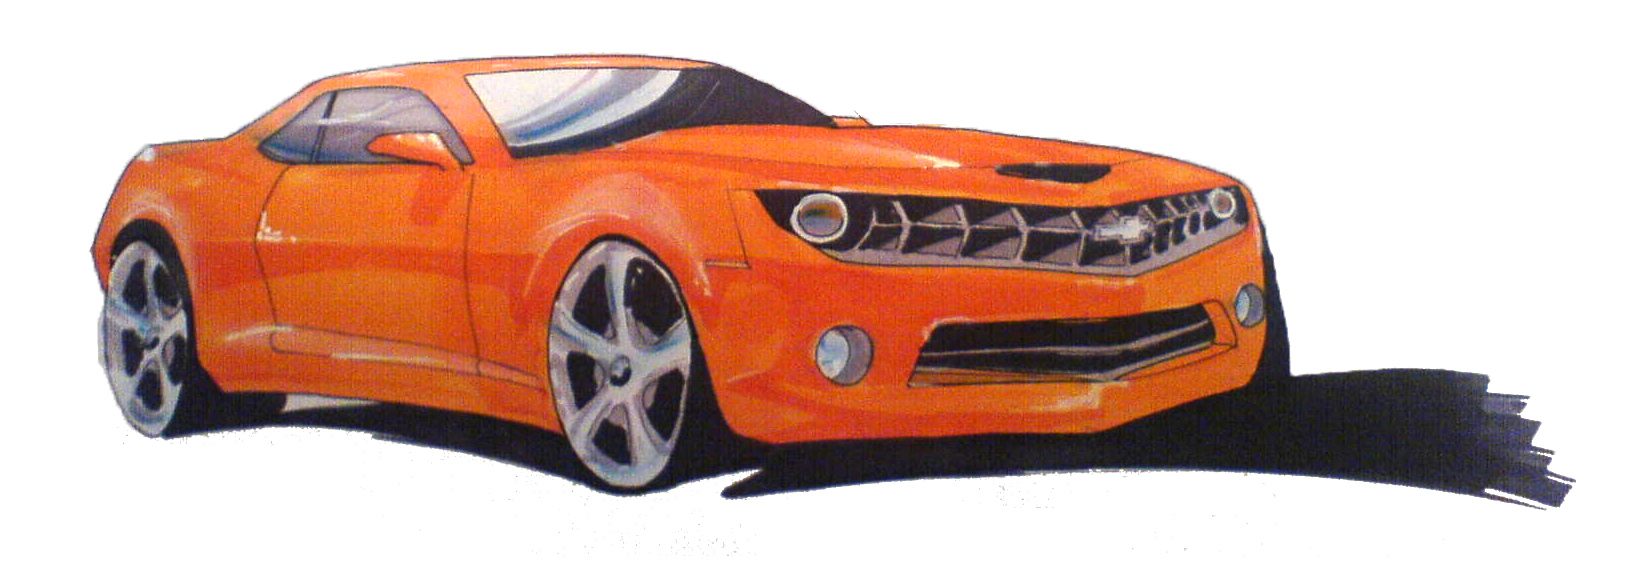 Orange camaro submited images pic2fly